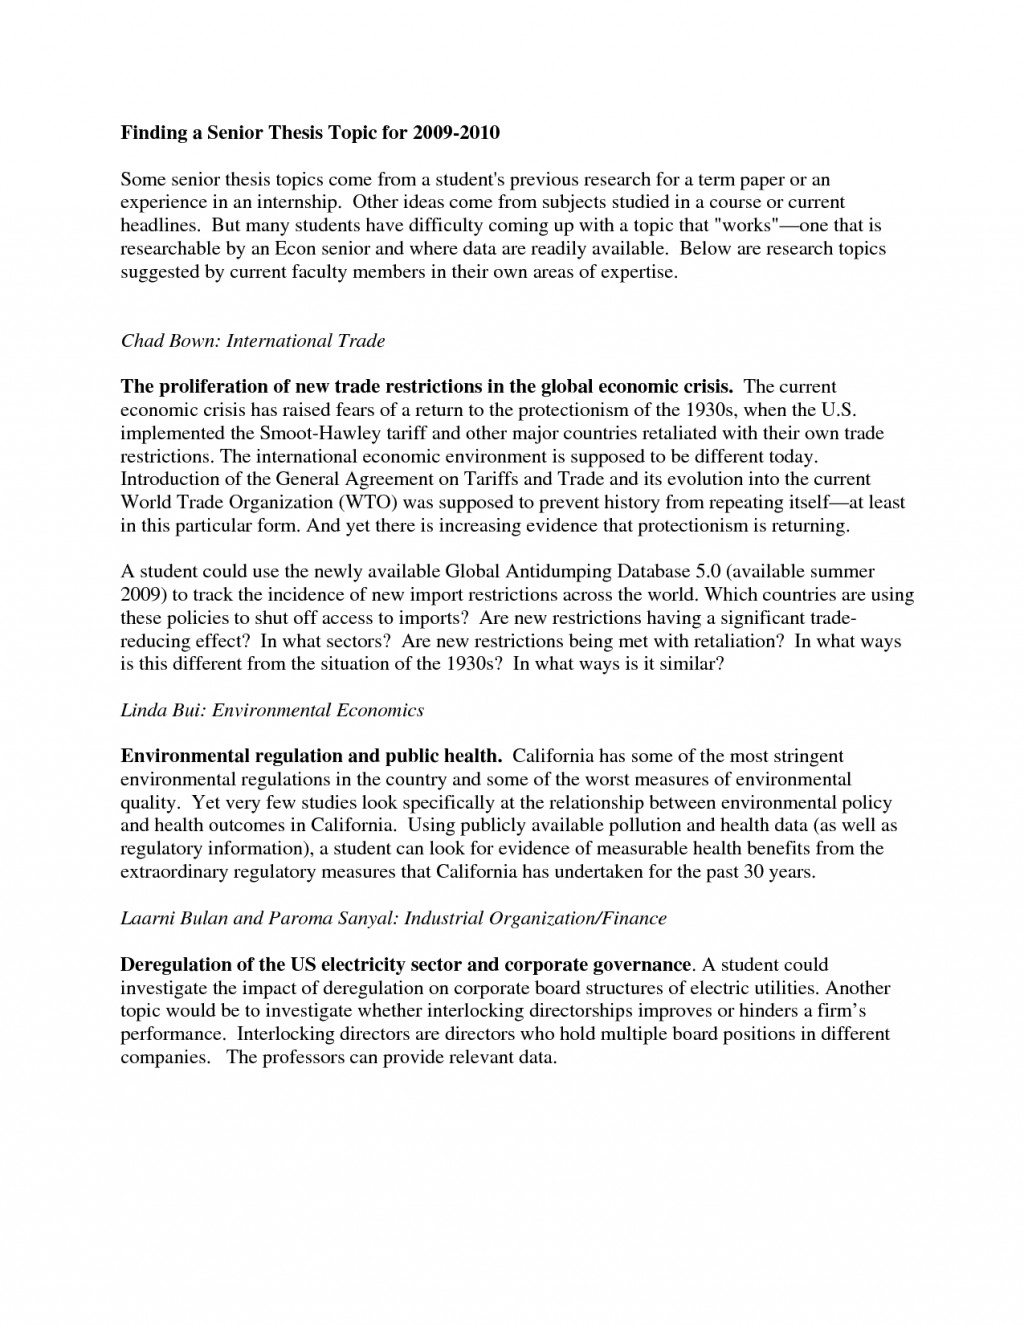 007 Research Paper 1cct5dxadq Great Topics For Astounding College English Class Students Technology Large